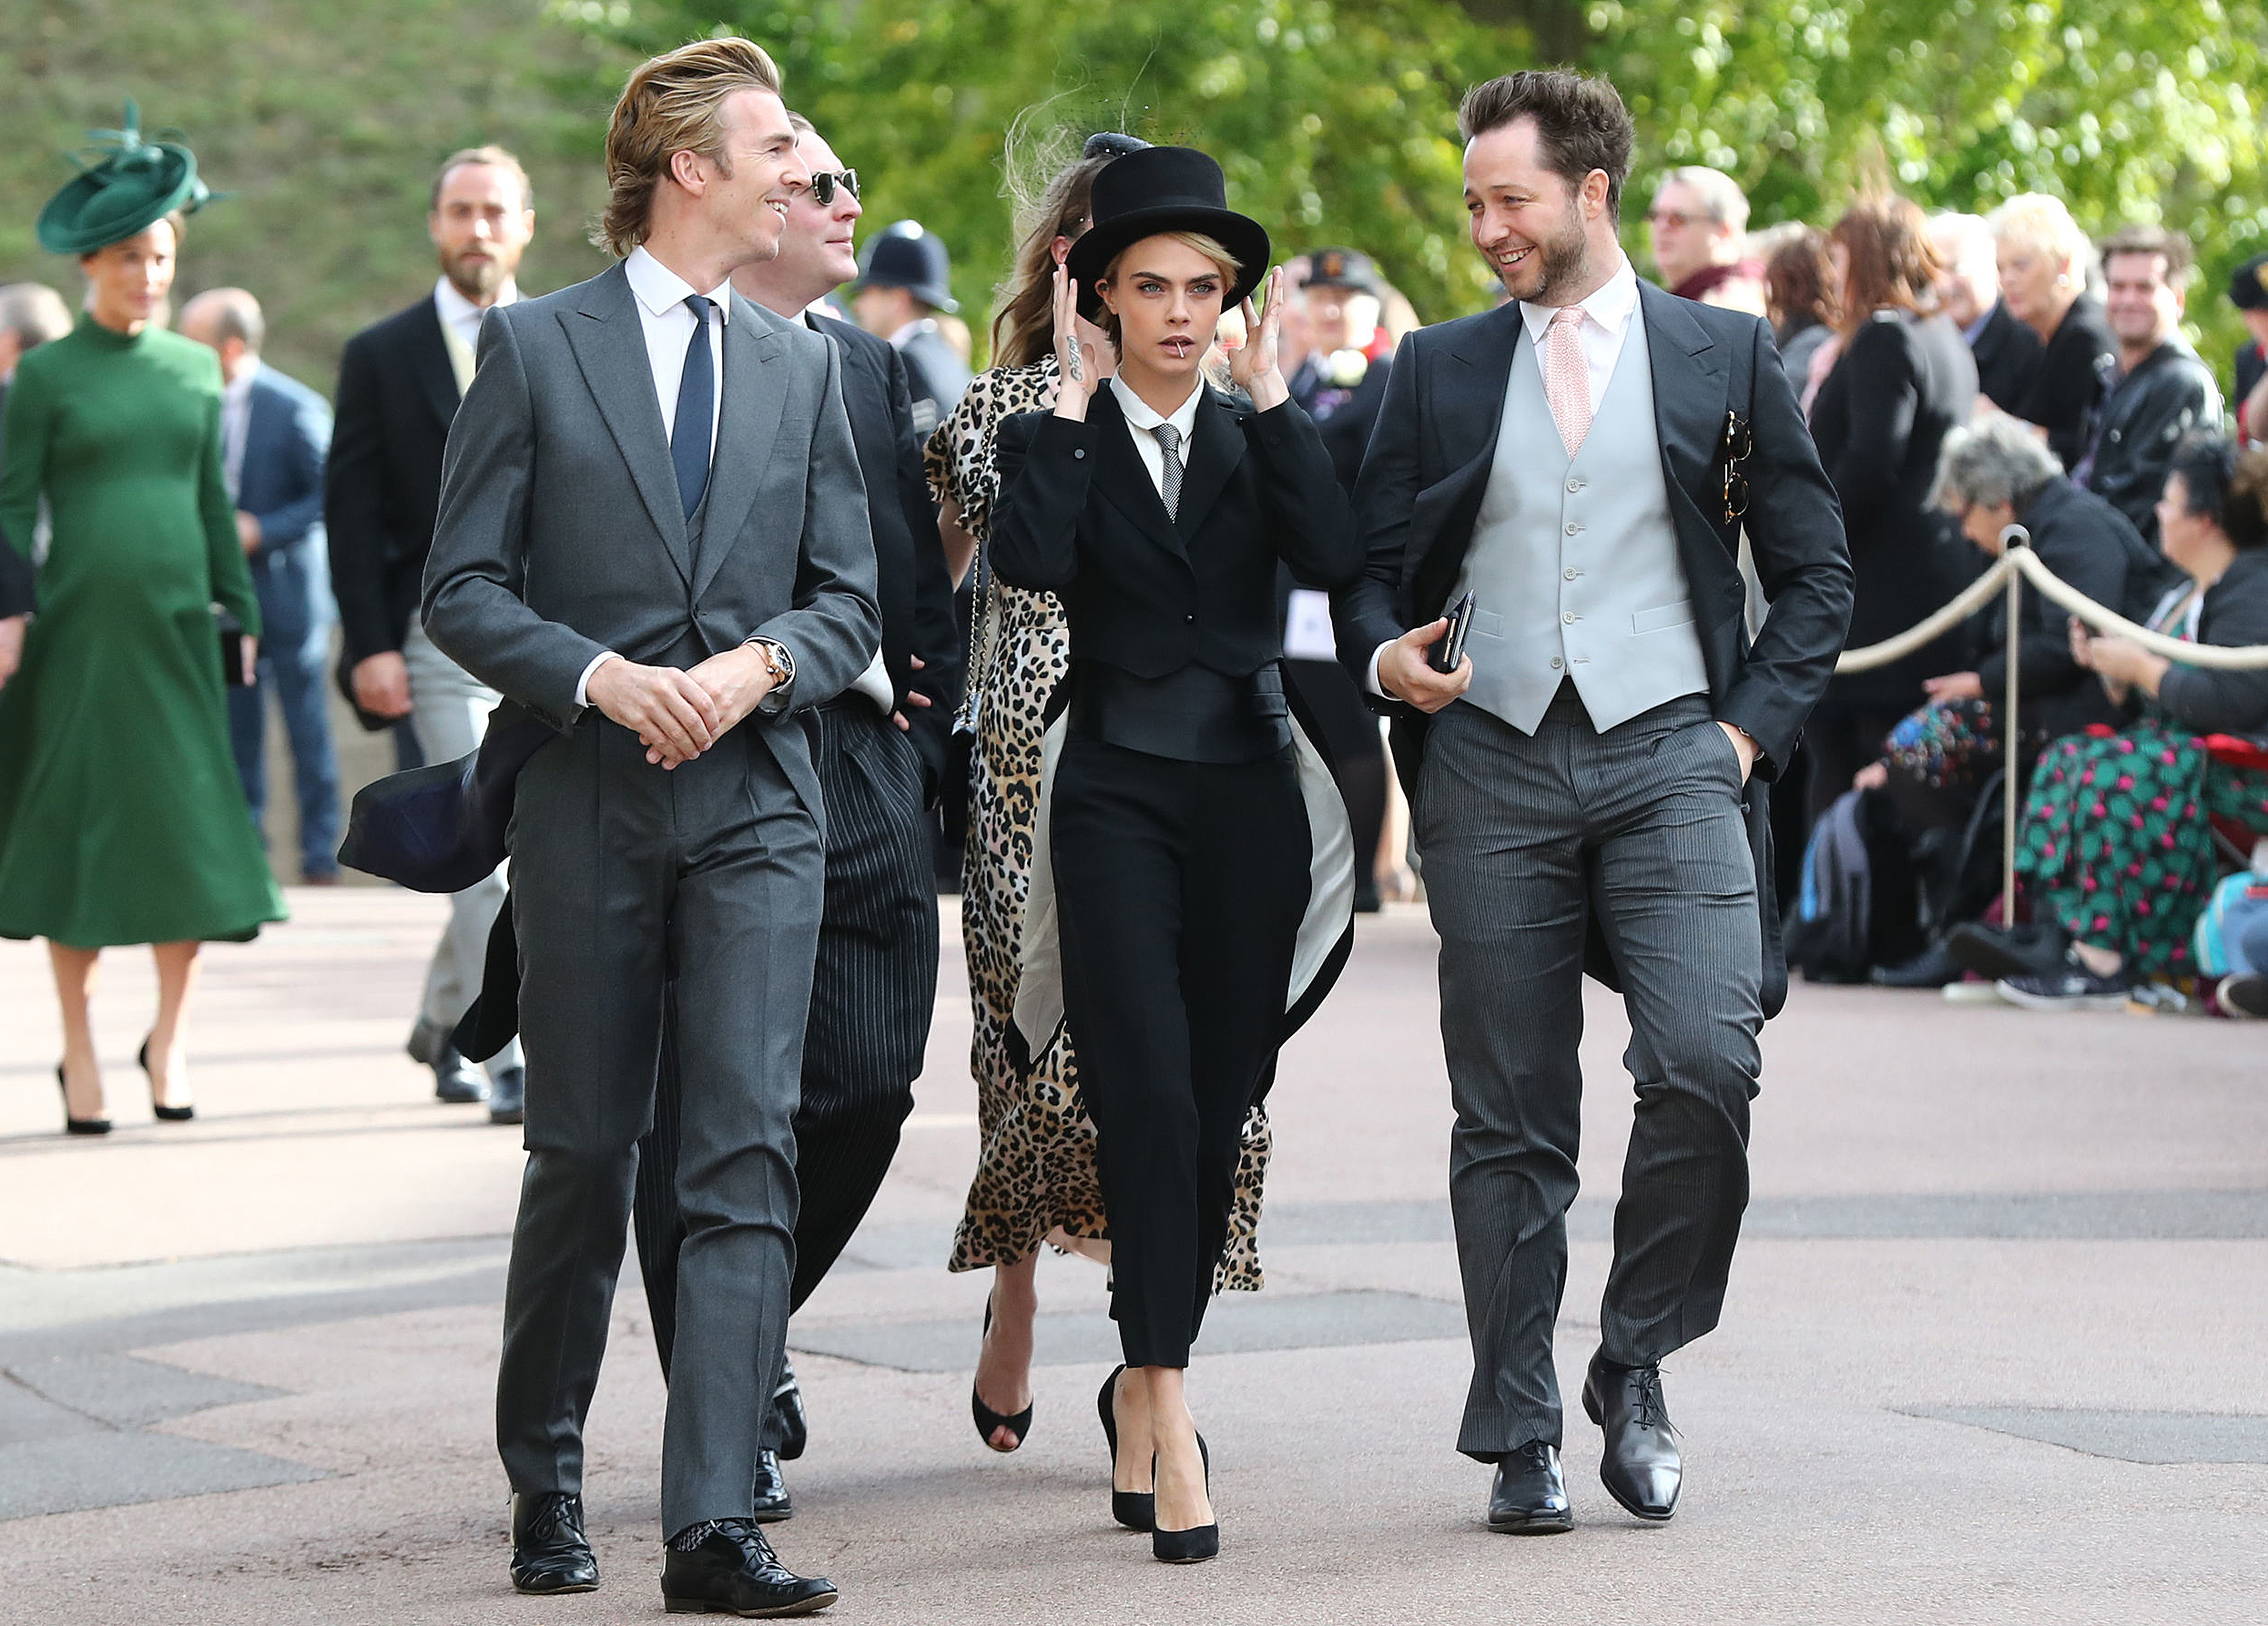 Cara Delevingne (C) arrives with her brother-in-law James Cook (L) and US journalist Derek Blasberg (R) to attend the wedding of Britain's Princess Eugenie of York to Jack Brooksbank at St George's Chapel, Windsor Castle, in Windsor, on October 12, 2018. (Photo by Gareth Fuller / POOL / AFP)        (Photo credit should read GARETH FULLER/AFP/Getty Images)